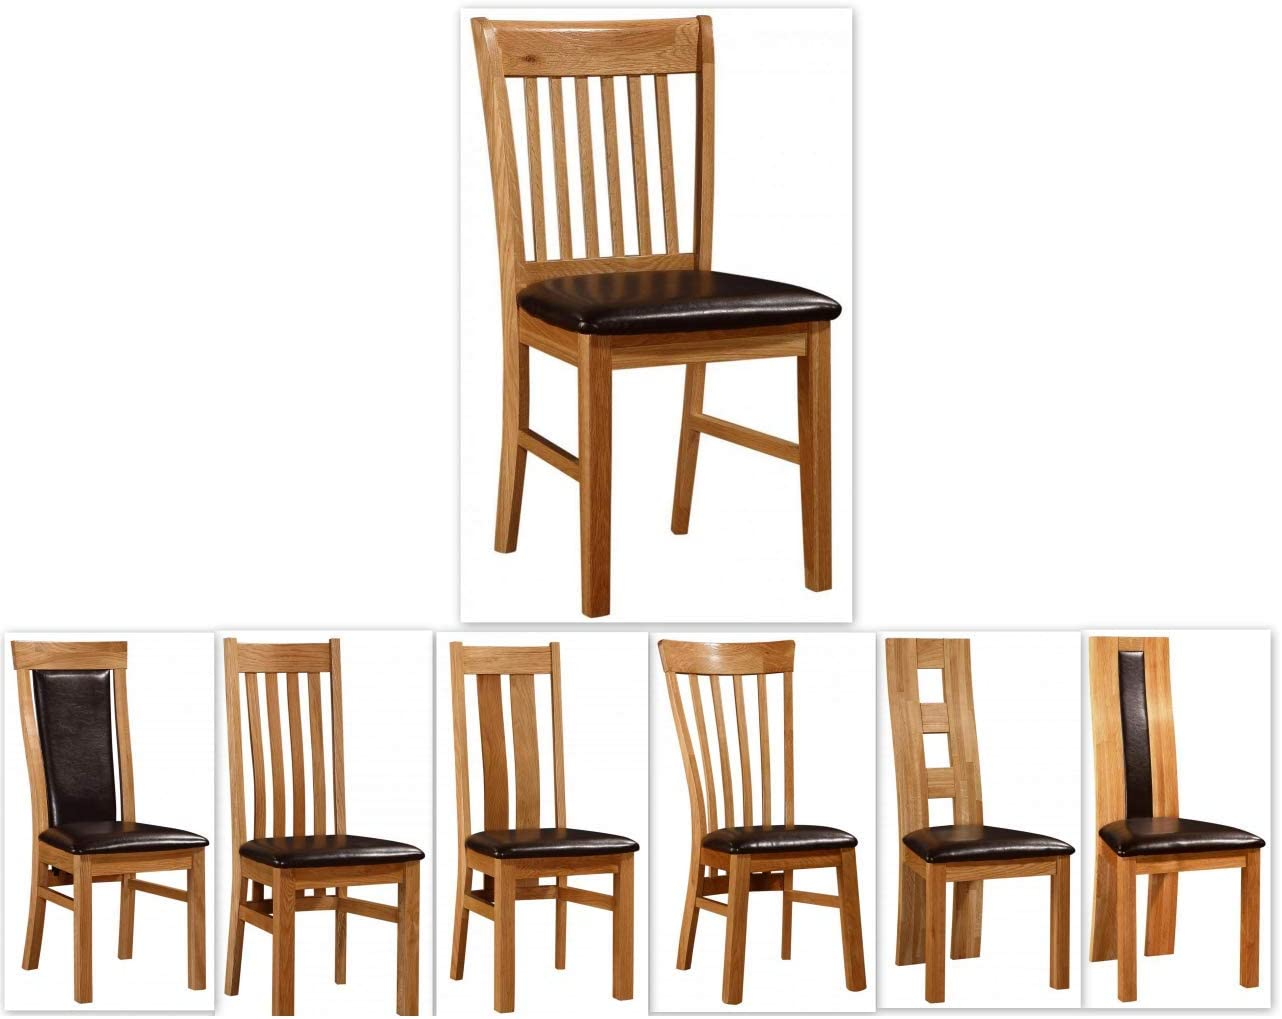 Kelsey Stores Solid Oak Dining Chairs Oak Natural Chairs Various Designs Set Of Two (Lincoln)